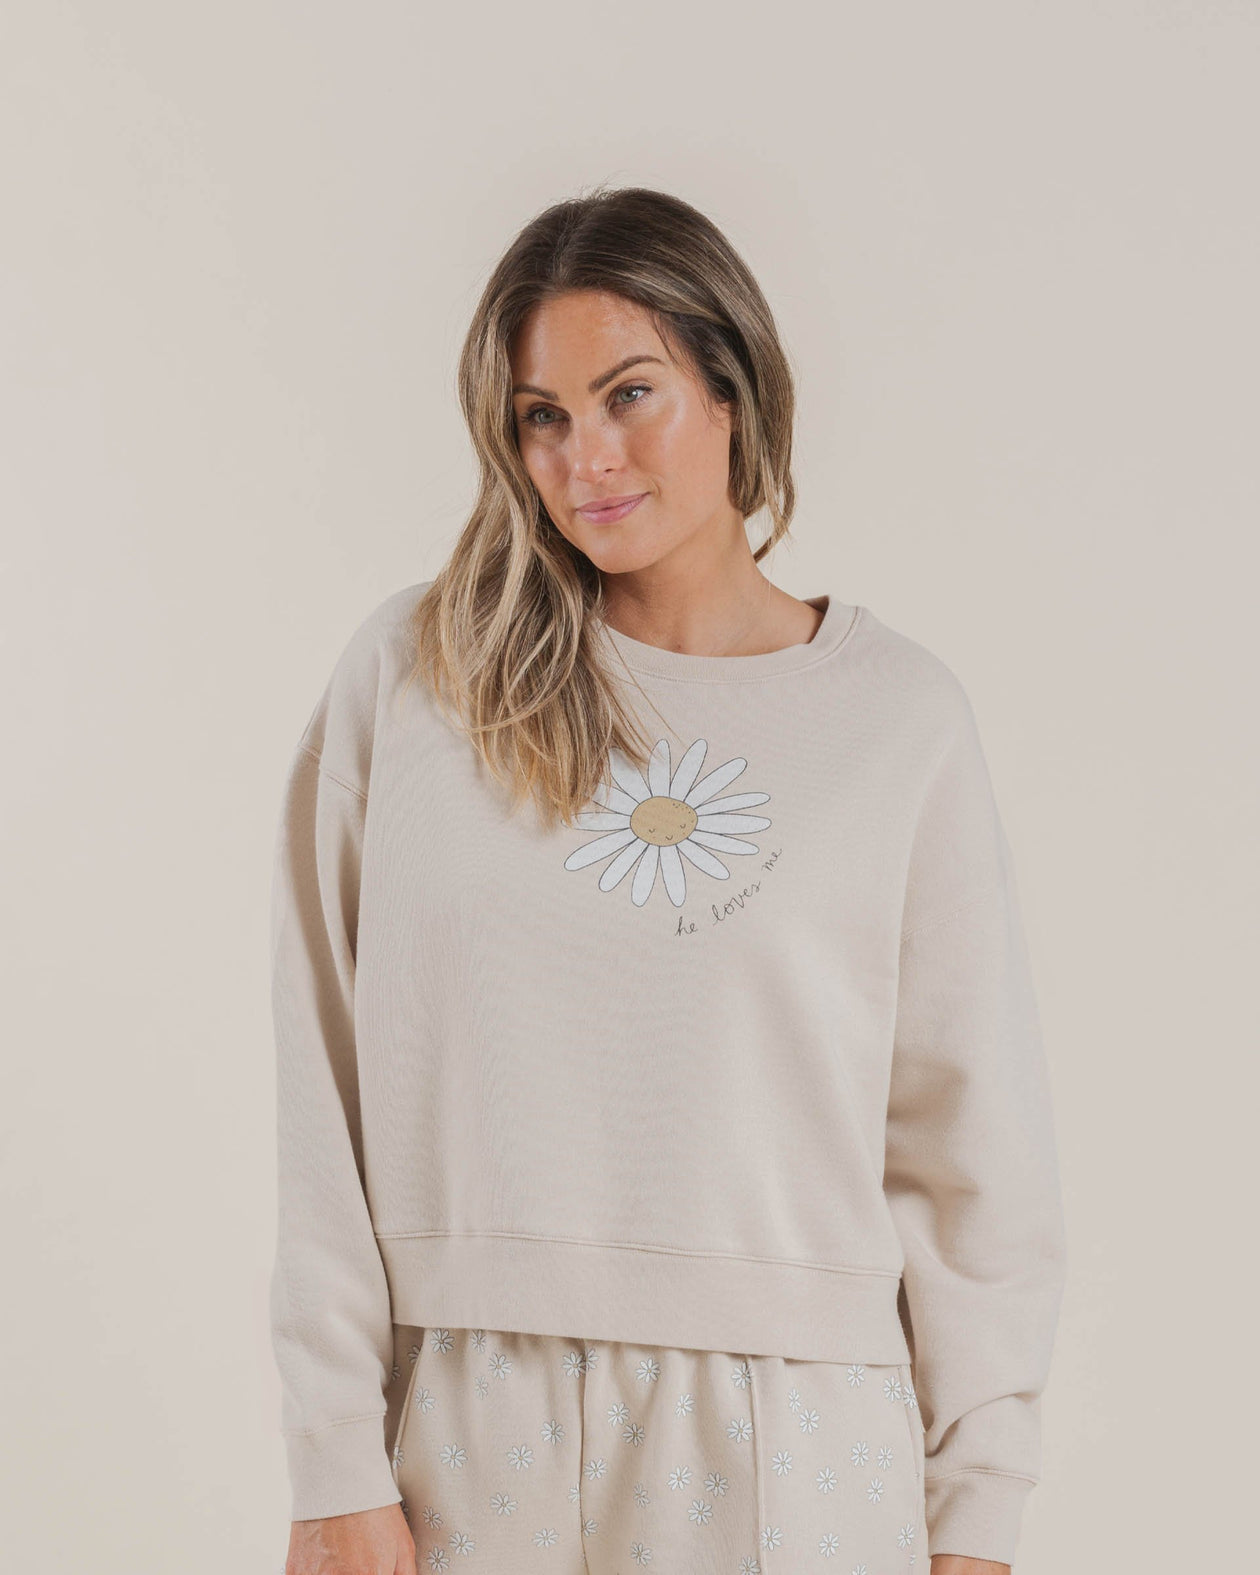 The Rylee & Cru Daisy Love Boxy Pullover Shell